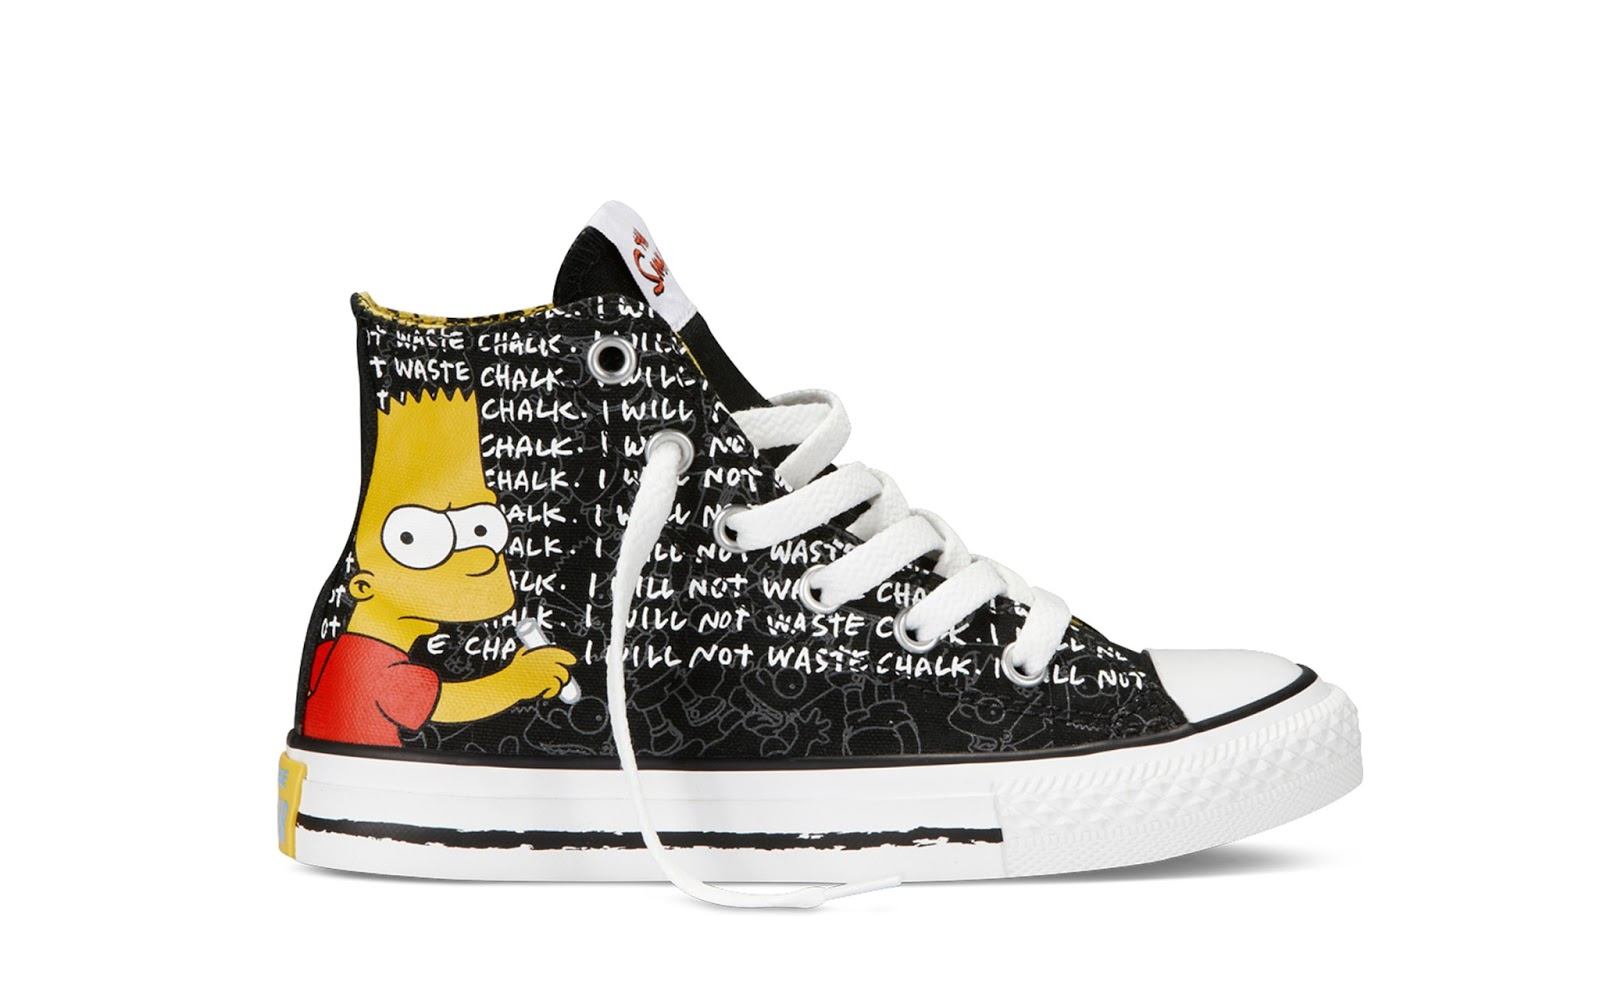 aef0355837bb80 ... denmark the simpsons chuck taylor all star collection available  exclusively at journeys and converse stores 9543f